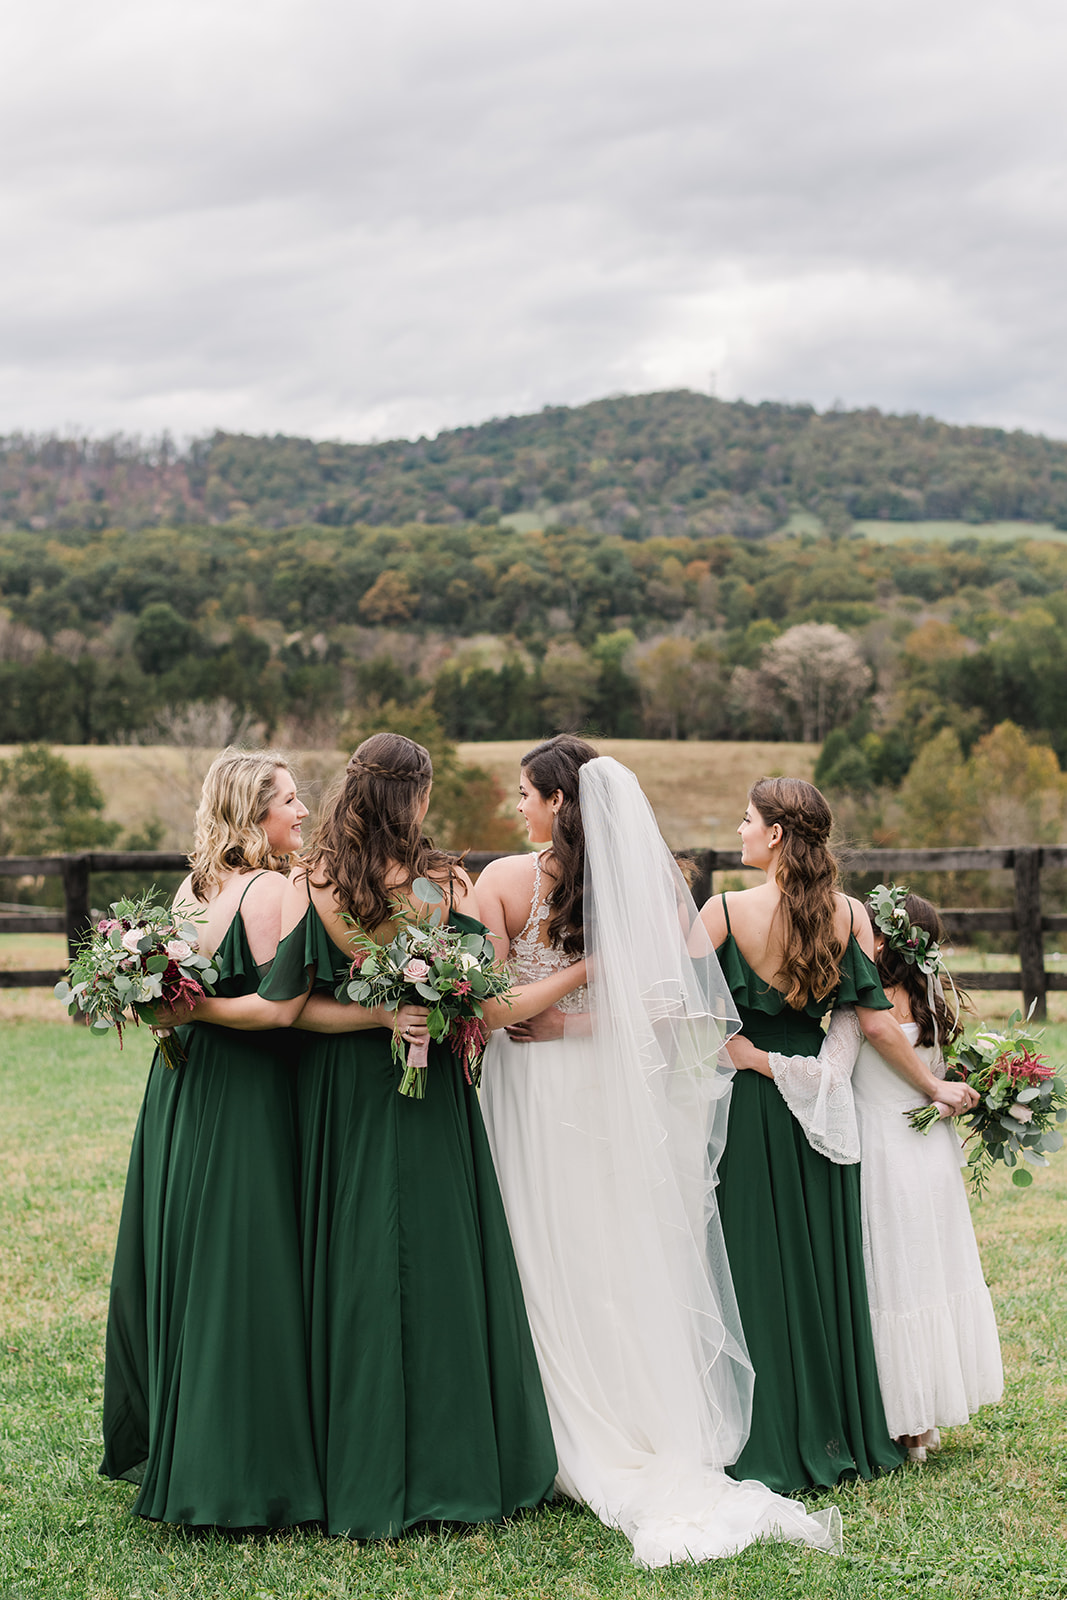 Sarah and Taylor 3 Cats Photo Blue Ridge Mountain Wedding Photographer 61591 copy